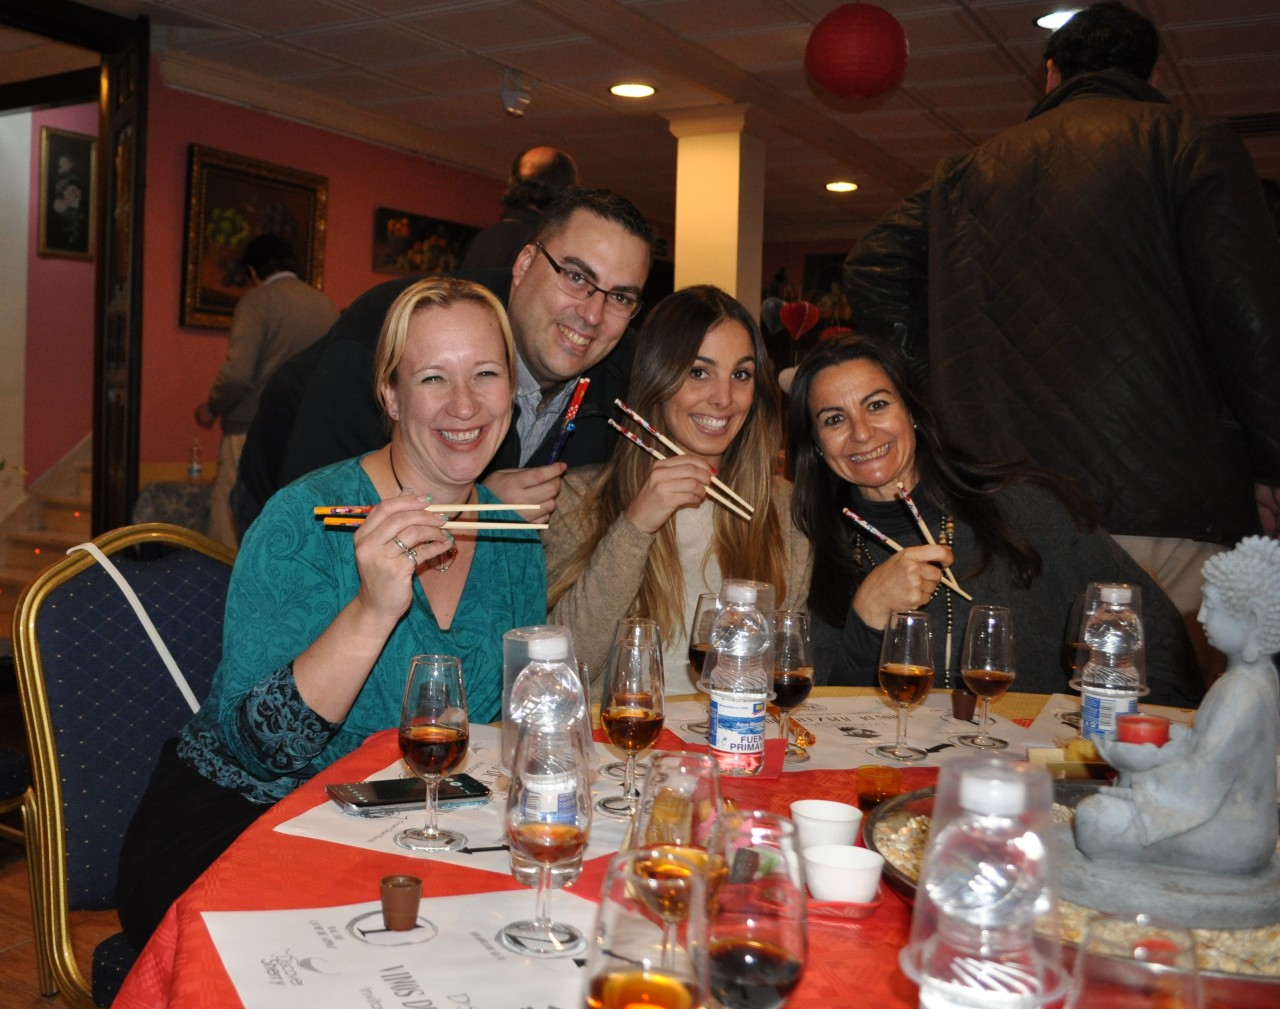 ¡¡Fotos de la celebración del año nuevo chino!! Chines New Year´s Eve celebration pictures!!